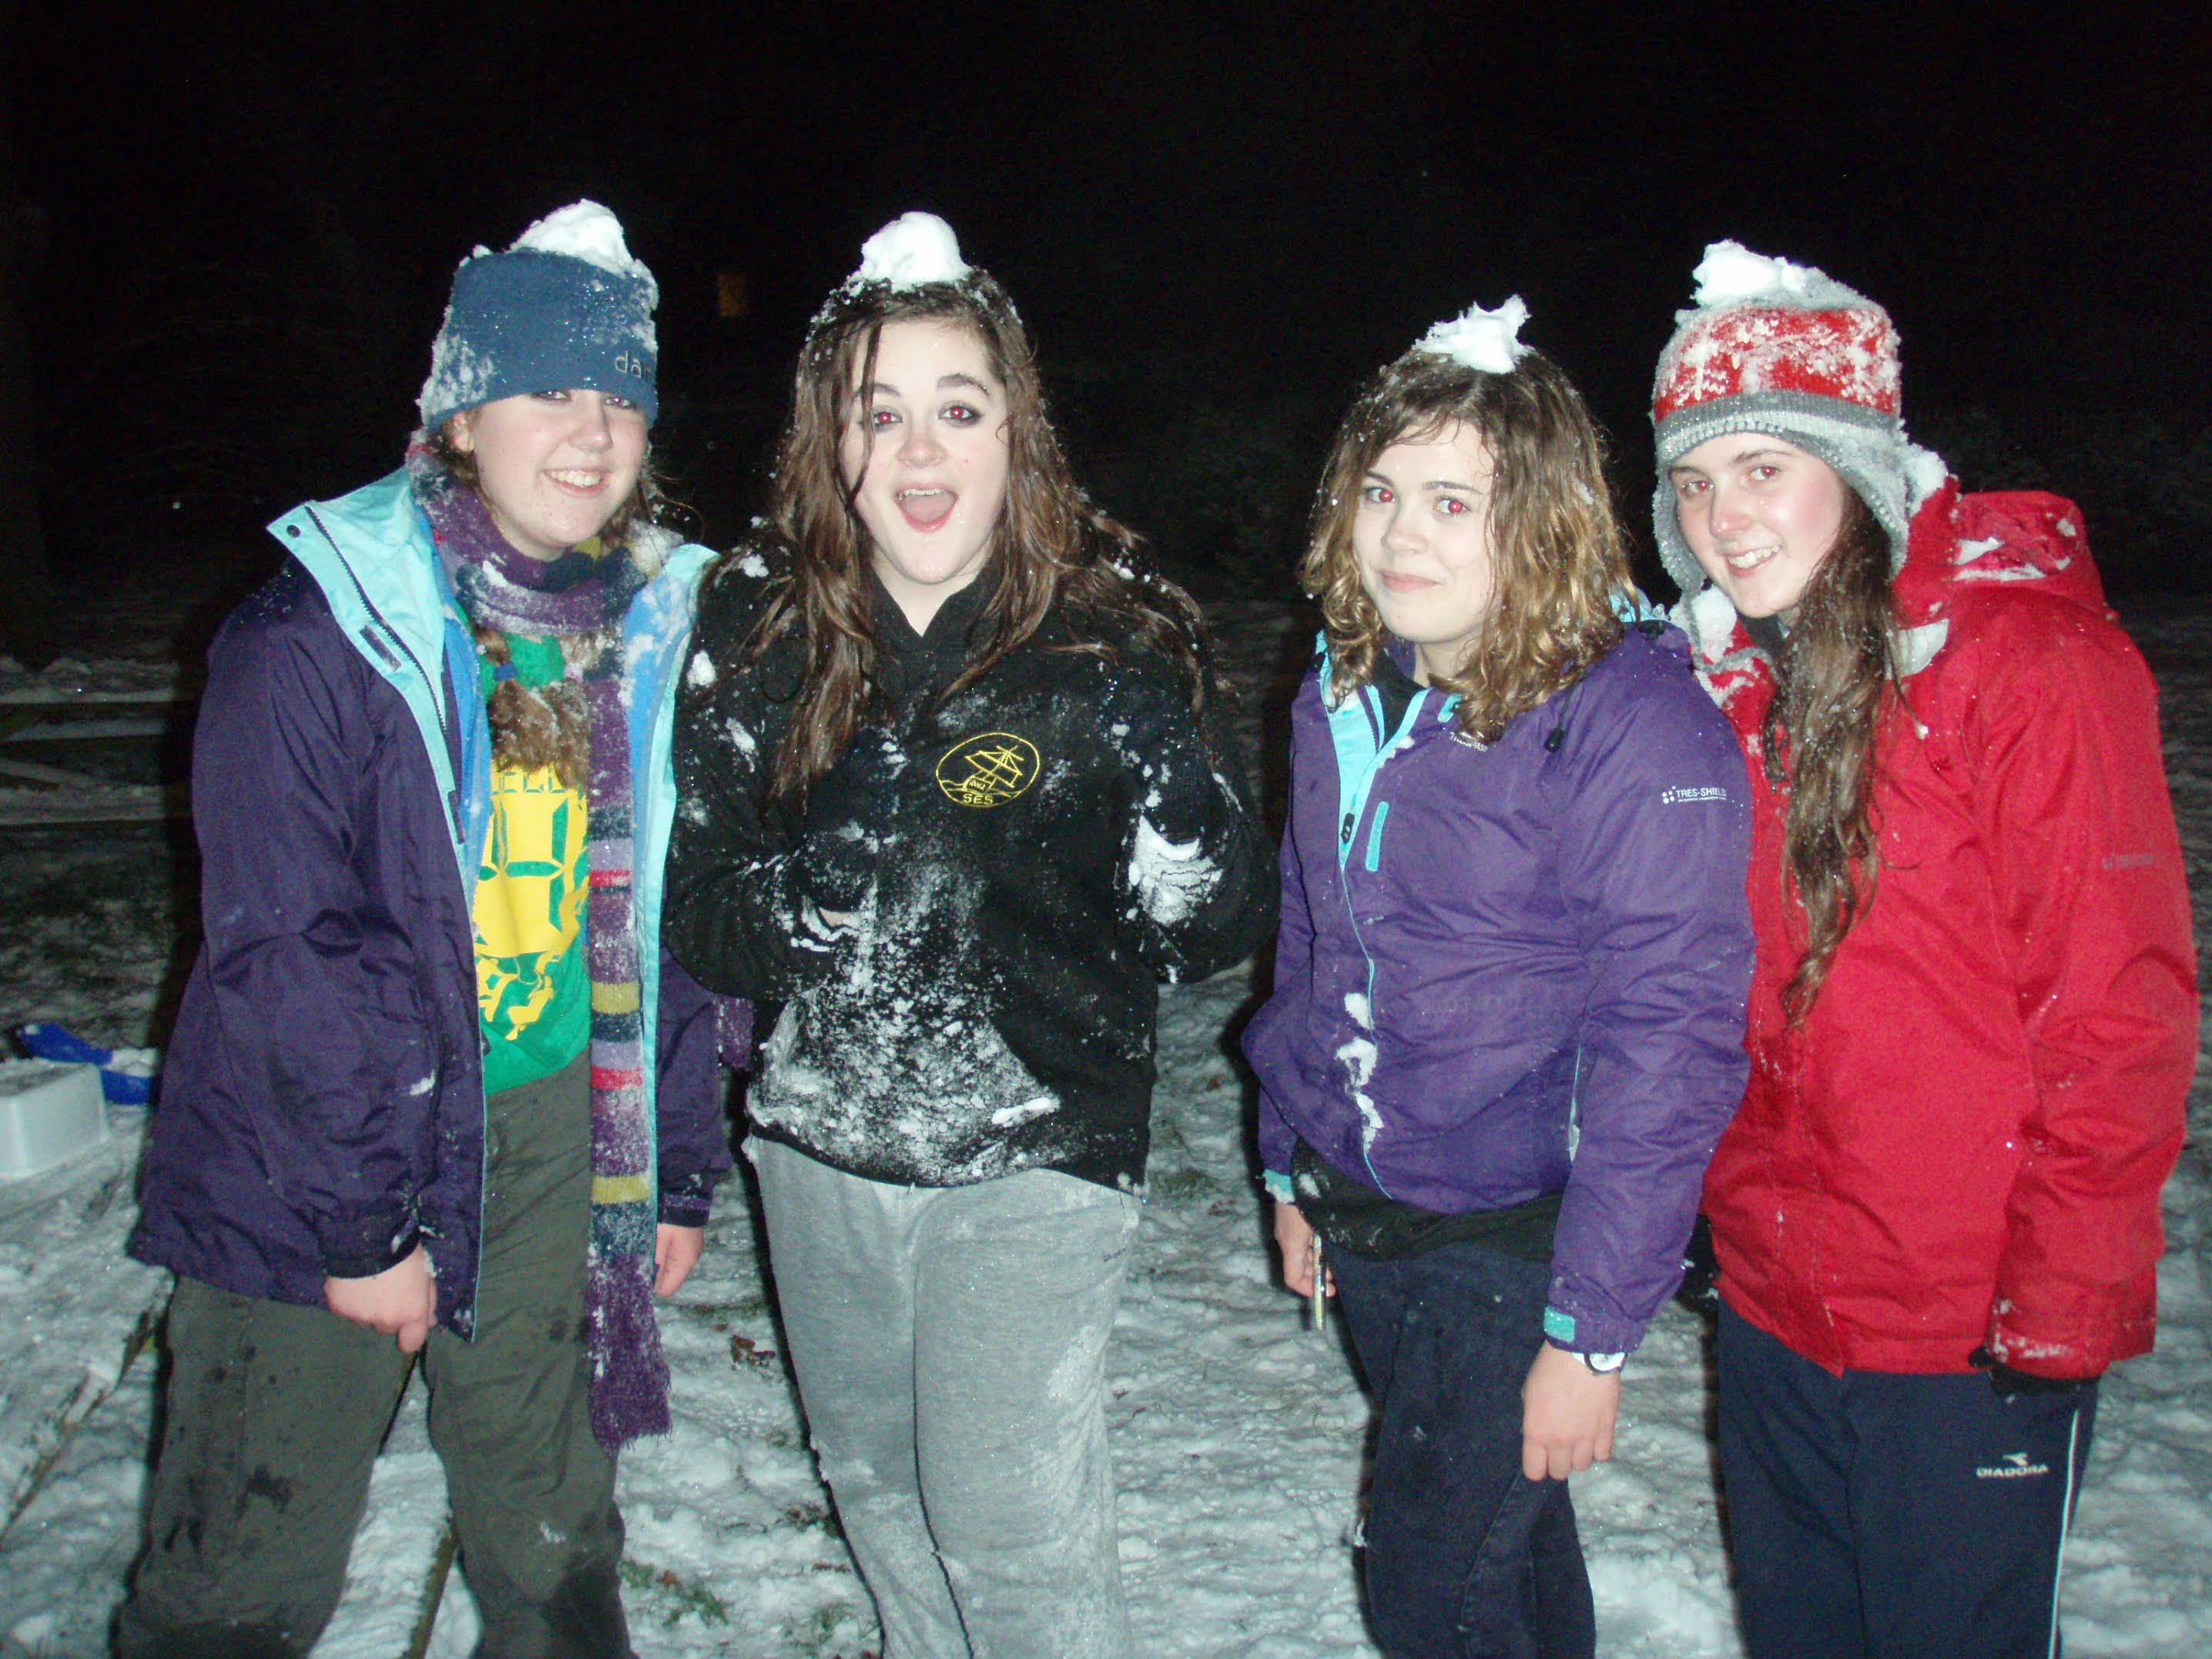 Shackleton Explorers in the snow - just not quite Antarctica!